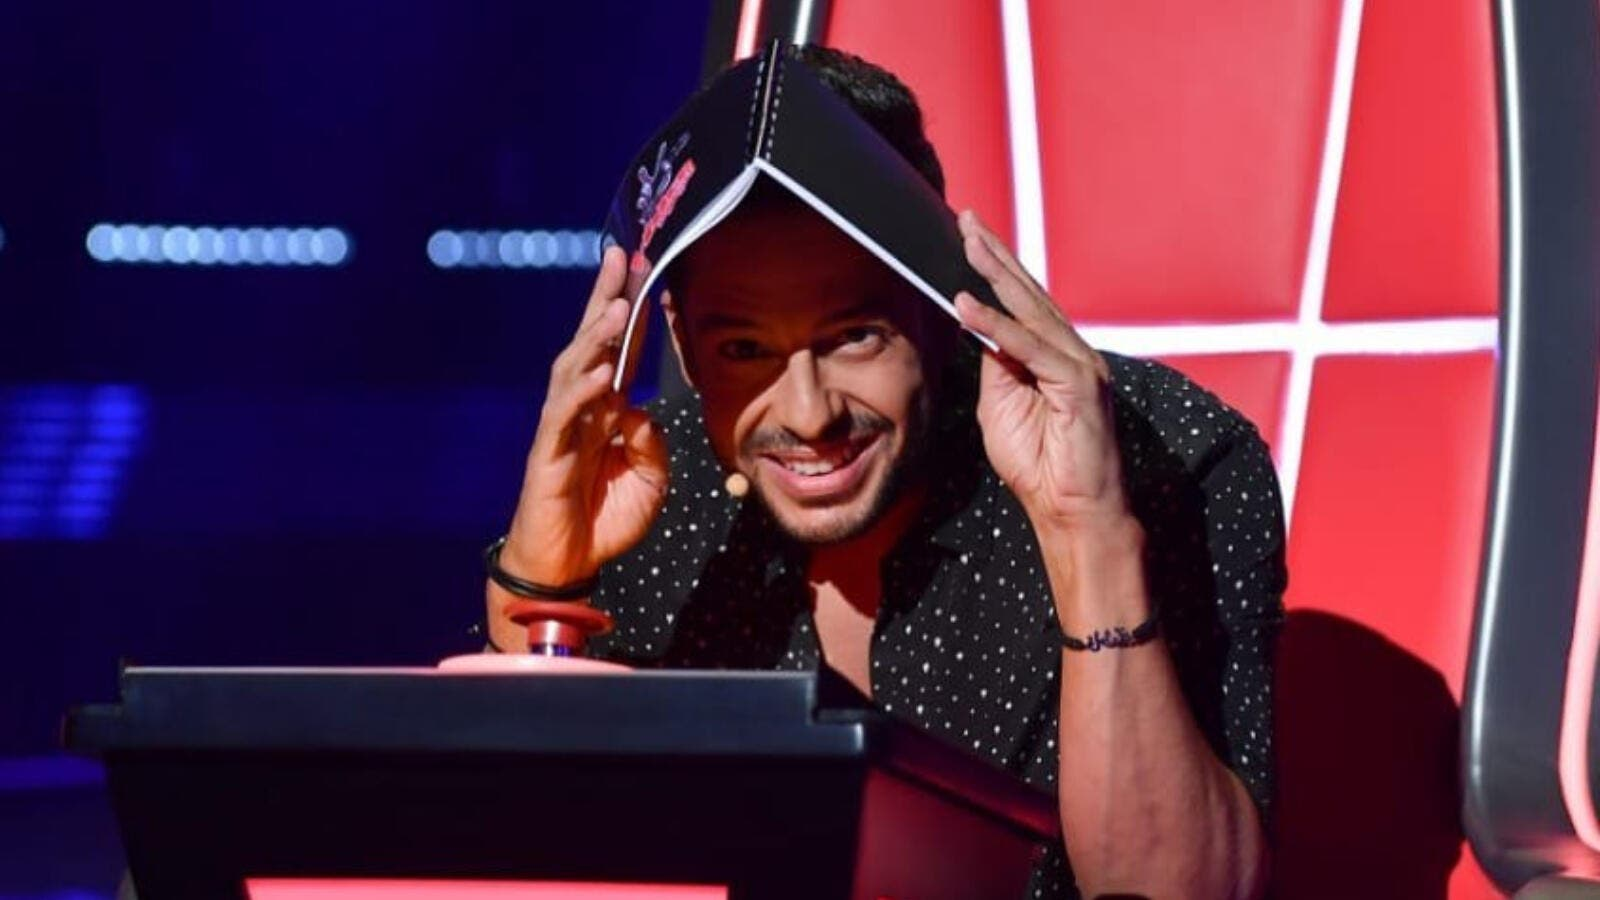 Hamaki broke the rules of the talent program The Voice Source hamaki Instagram